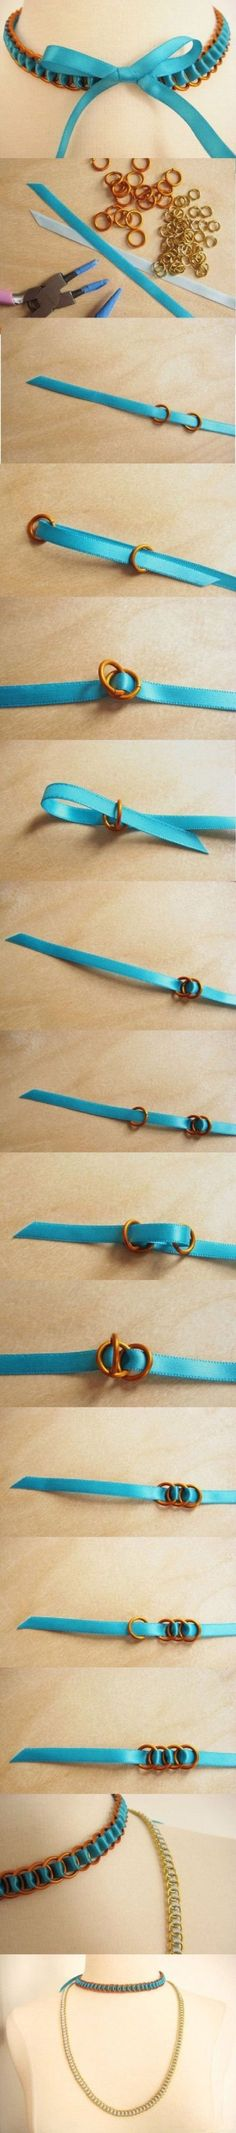 DIY Fashion Necklace jewelry crafts, diy crafts, diy fashion, diy necklace, diy jewelry, diy bracelet, handmade books, handmade crafts, fashion necklace